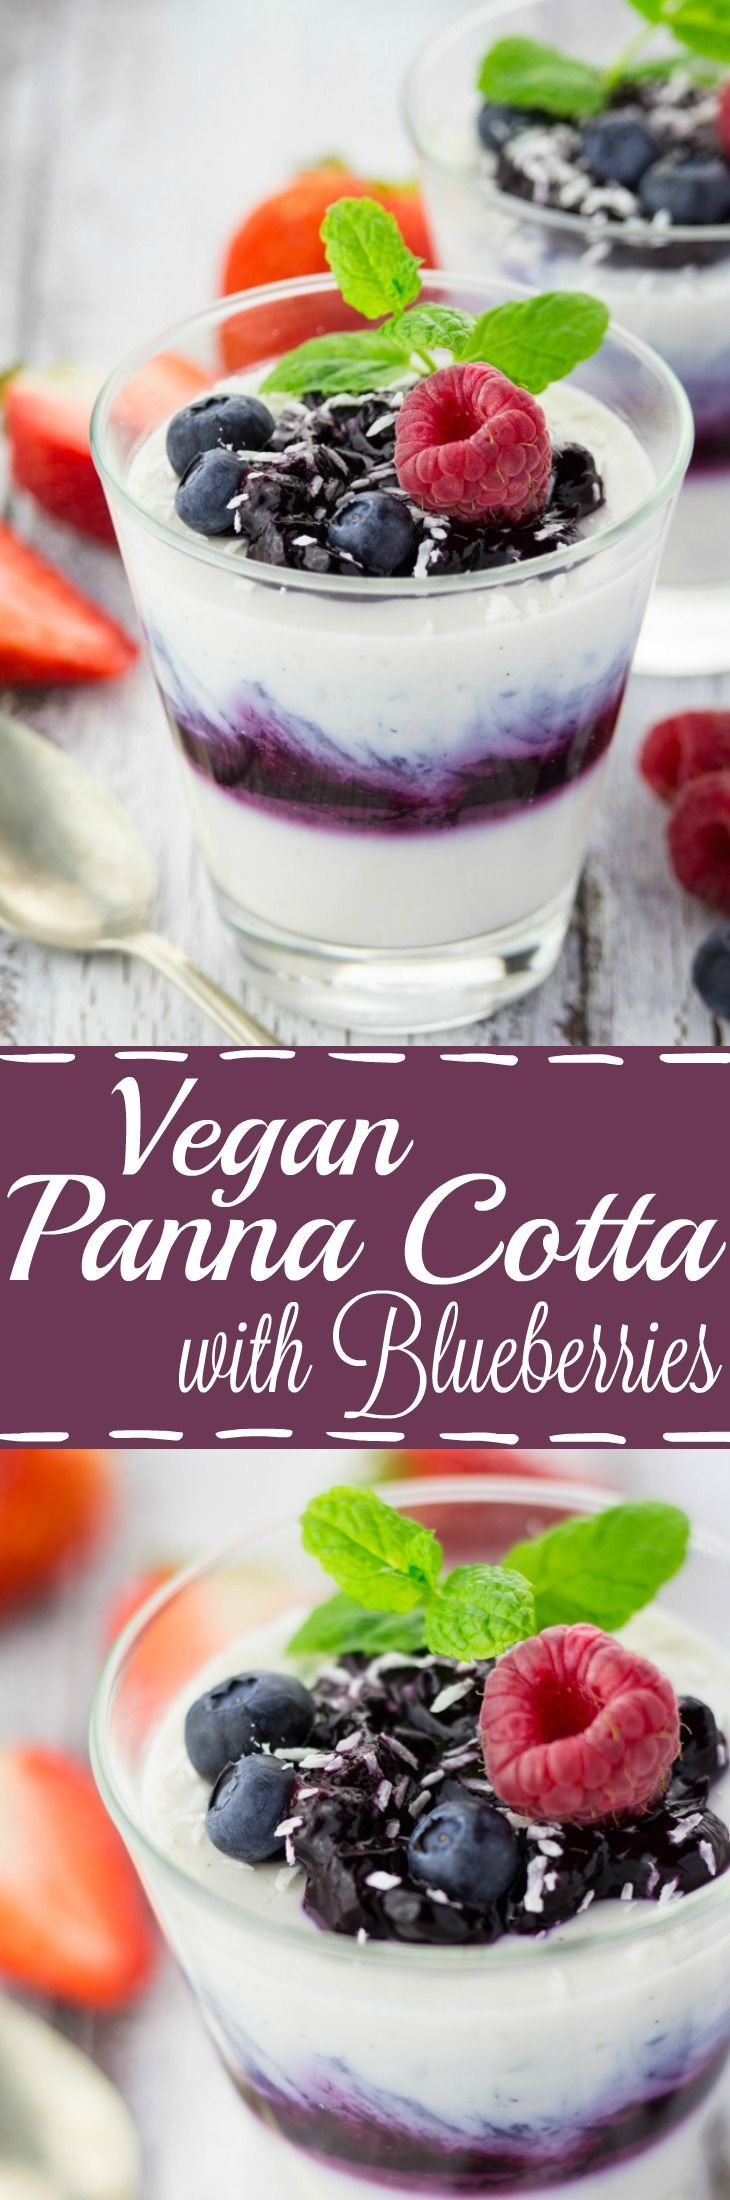 This vegan blueberry coconut panna cotta is just as amazing as the original - if not even better! The secret ingredient is agar instead of gelatin.